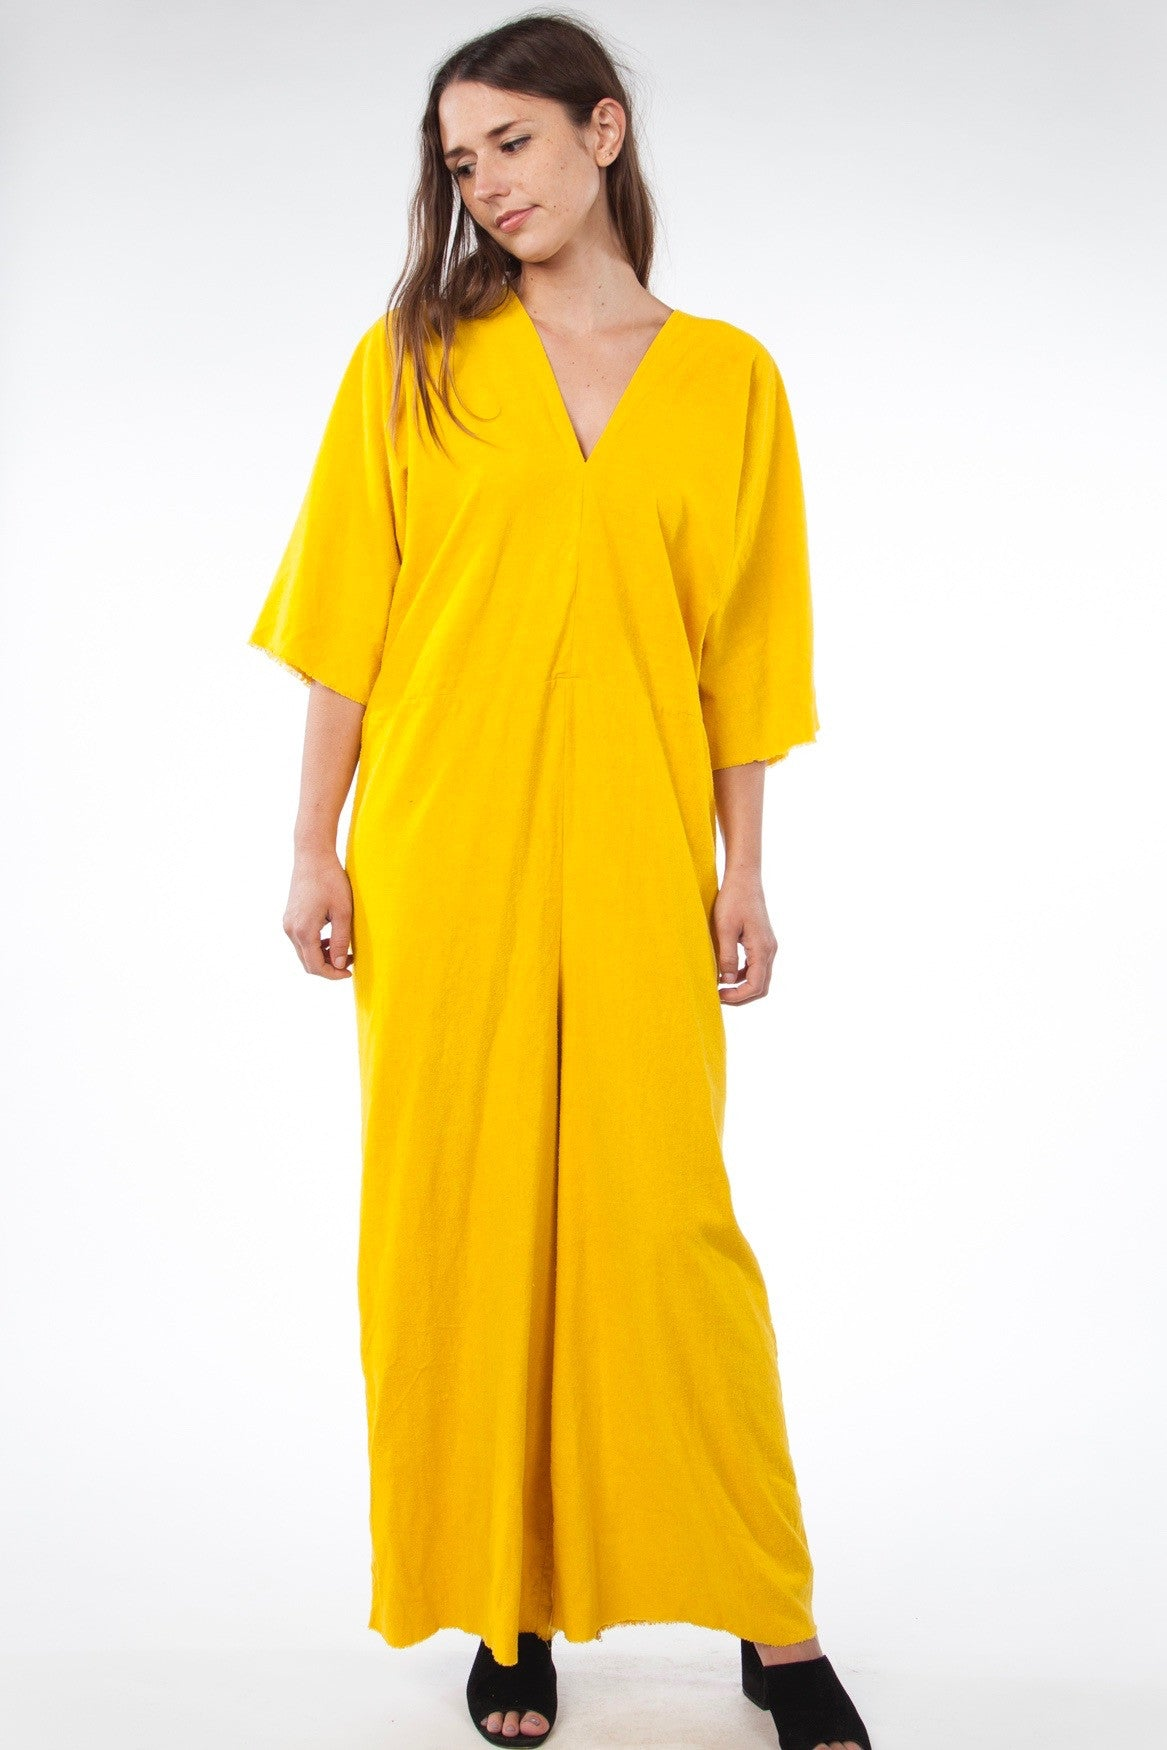 Muse Jumpsuit, Silk Noil in Marigold